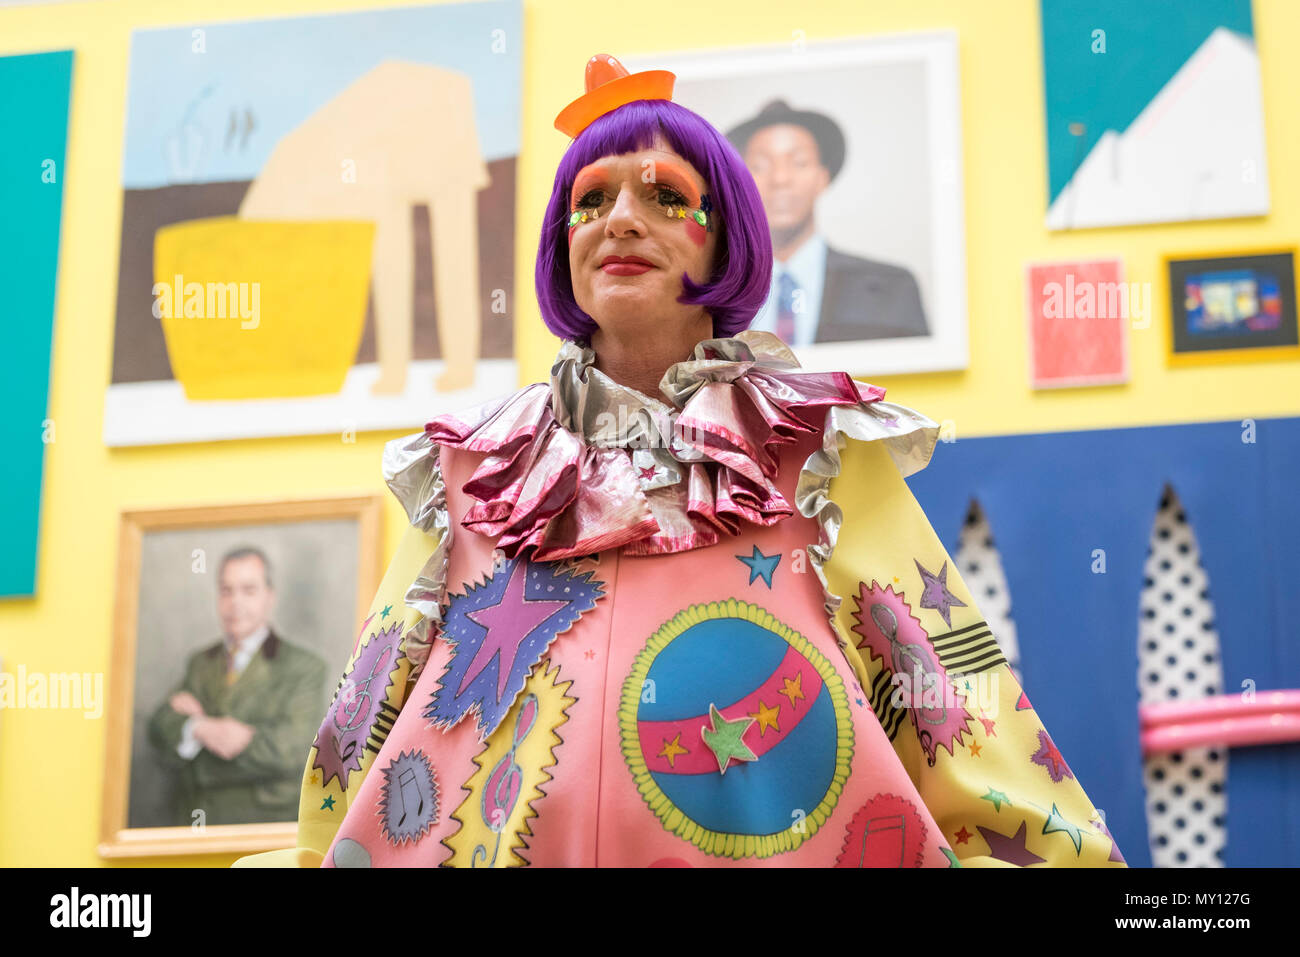 London, UK.  5 June 2018. Grayson Perry RA in one of the vividly coloured galleries at the preview of the 250th Summer Exhibition at the Royal Academy of Arts in Piccadilly, which has been co-ordinated by Grayson Perry RA this year.  Running concurrently, is The Great Spectacle, featuring highlights from the past 250 years.  Both shows run 12 June to 19 August 2018.  Credit: Stephen Chung / Alamy Live News - Stock Image